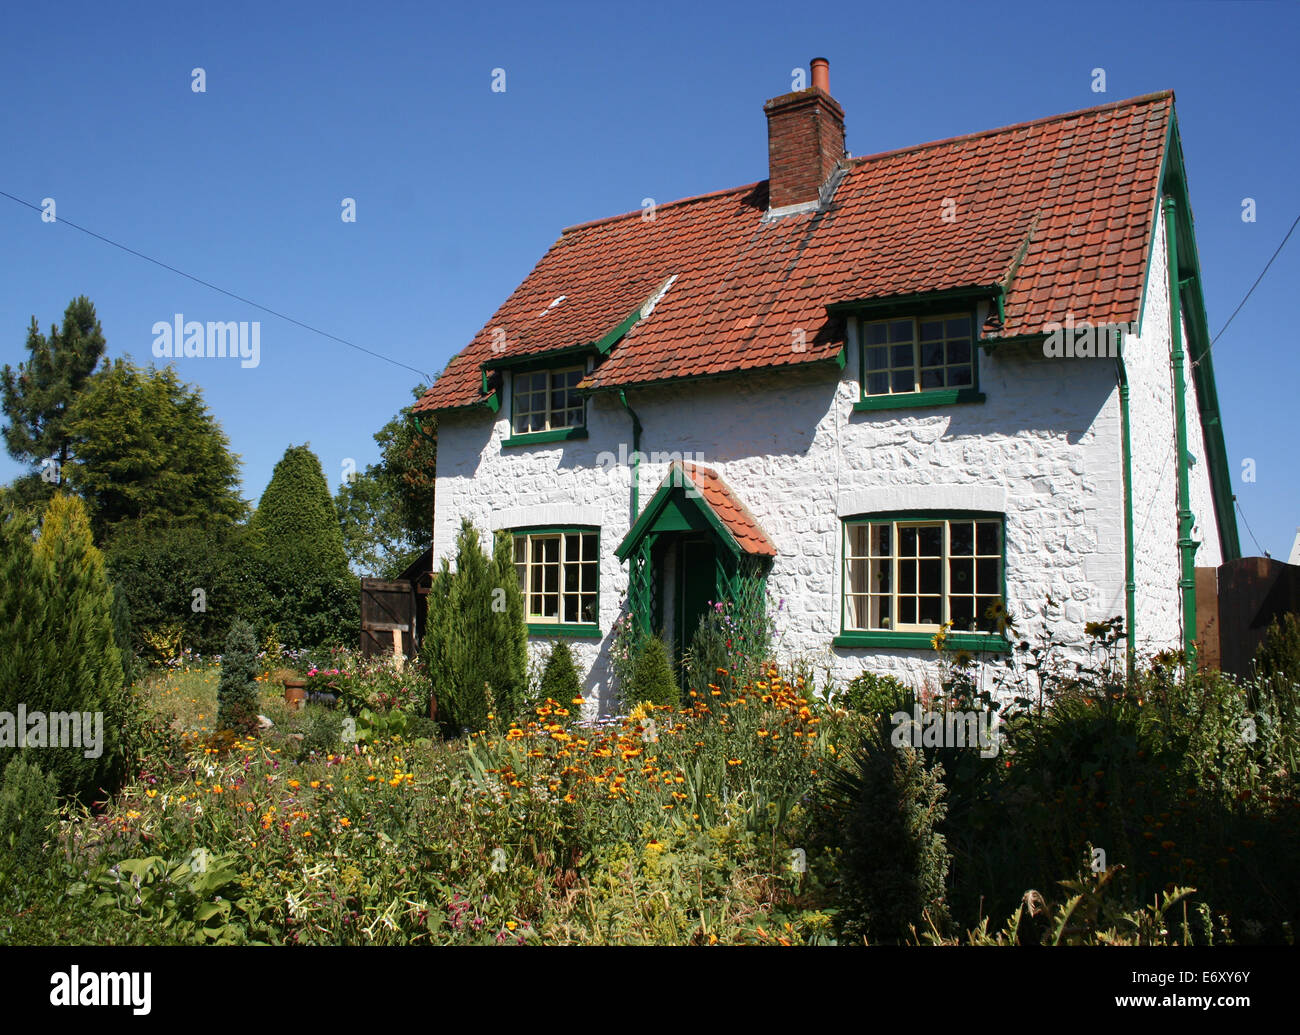 Closeup of typical English white wall cottage and garden - Stock Image